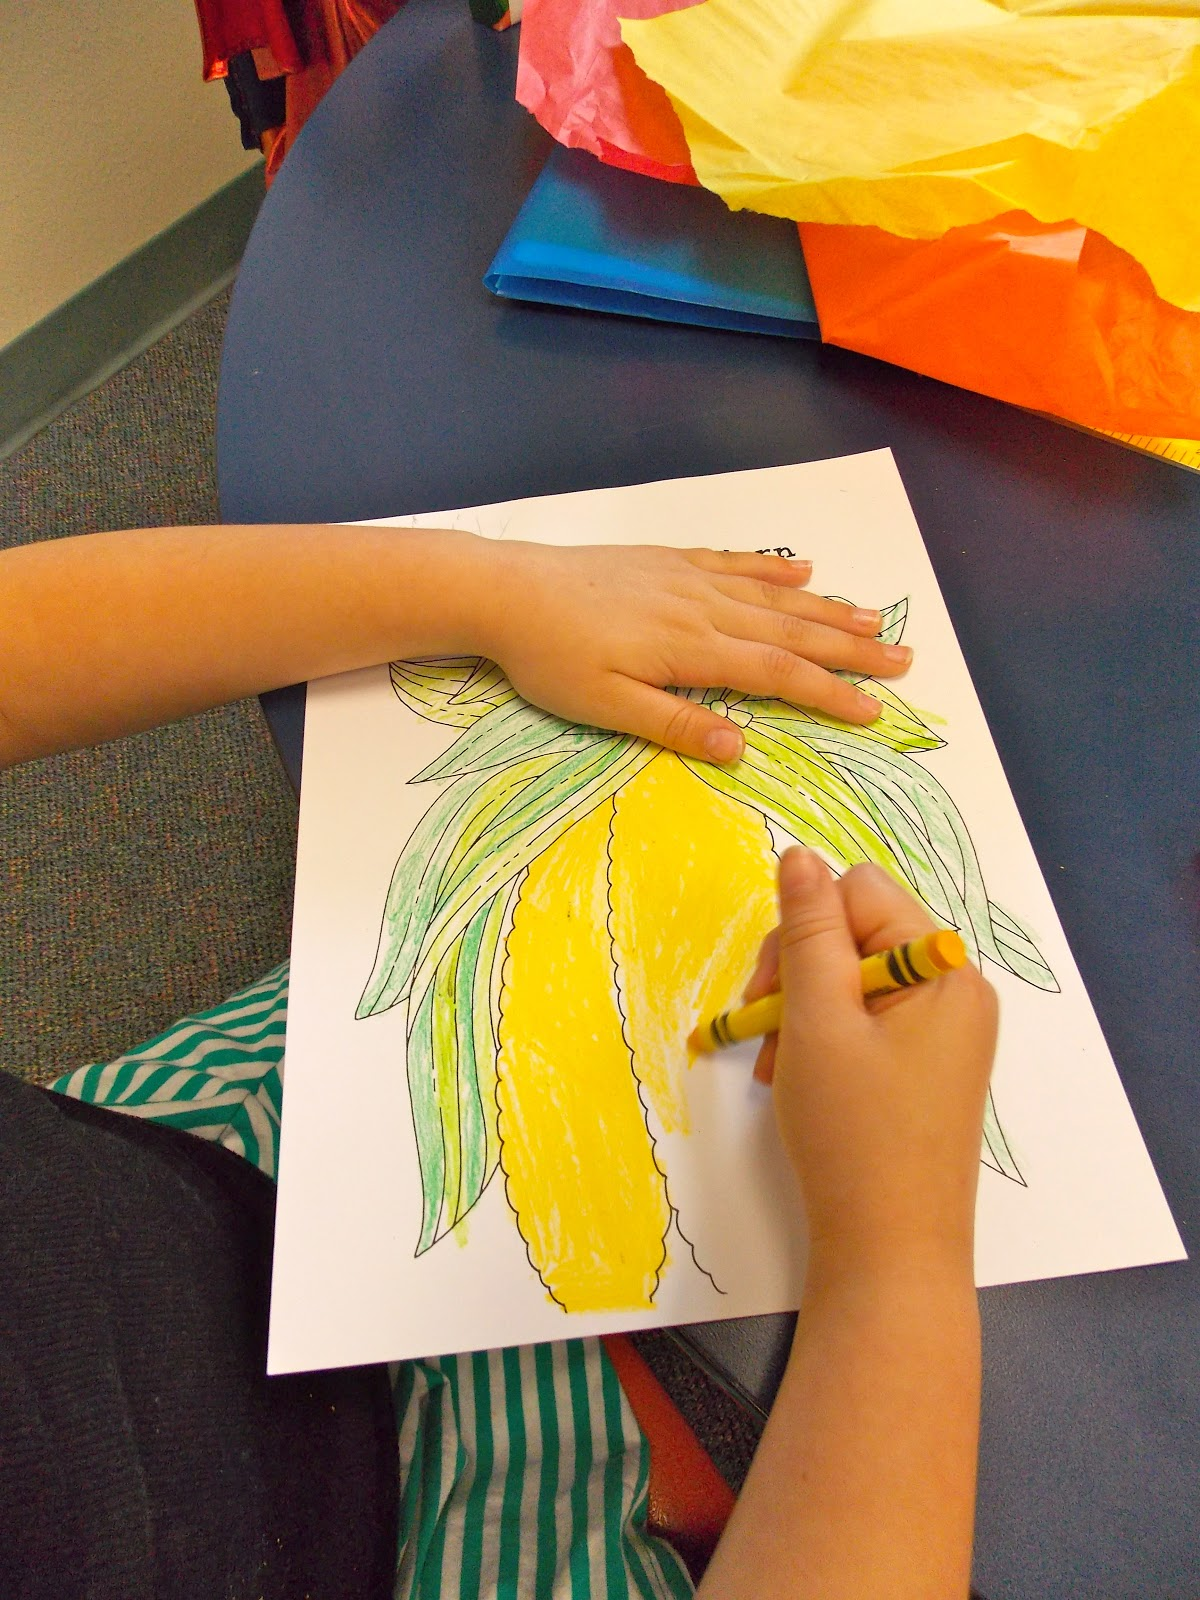 Tear fall colored construction paper into small pieces and glue - Step 2 Tear Off Pieces Of Tissue Paper And Roll Them Into Little Balls Then Glue Them All Over The Indian Corn